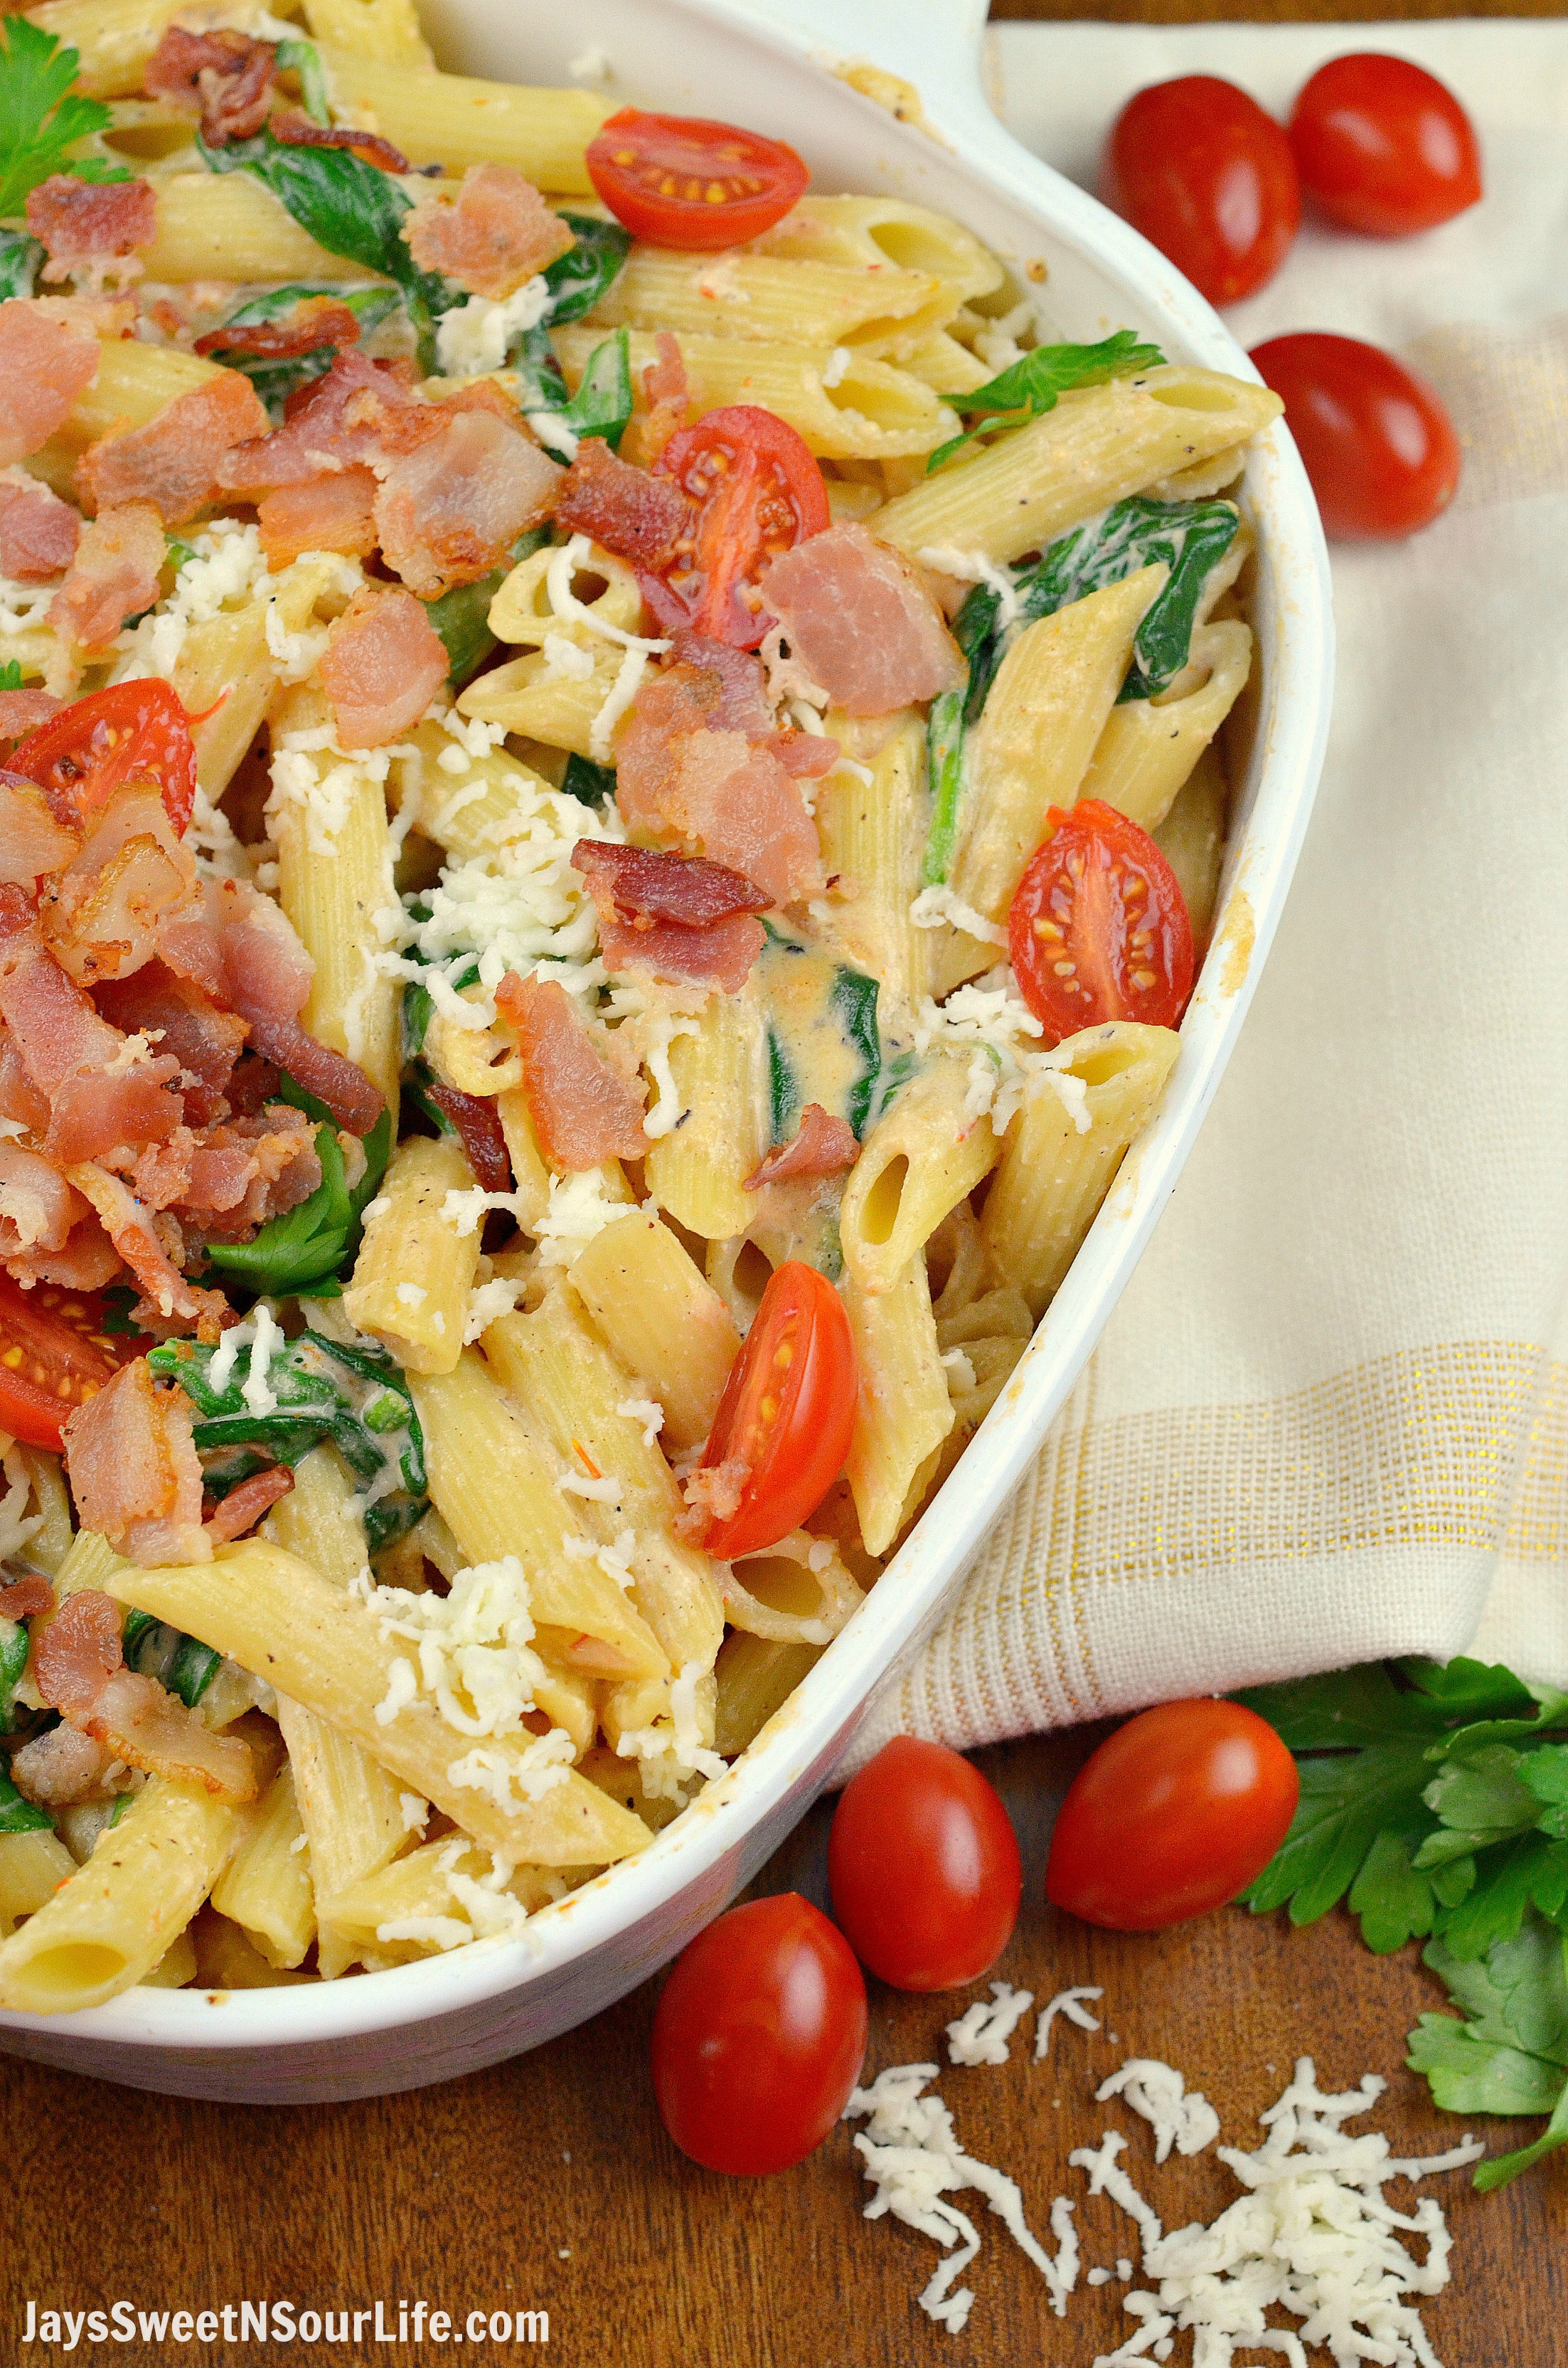 Cheesy Bacon and Spinach Penne Pasta in Pan. Treat your family this holiday season with a deliciously easy to make Cheesy Bacon and Spinach Penne Pasta. Perfect for any dinner time during the year. Shared via Jays Sweet N Sour Life.